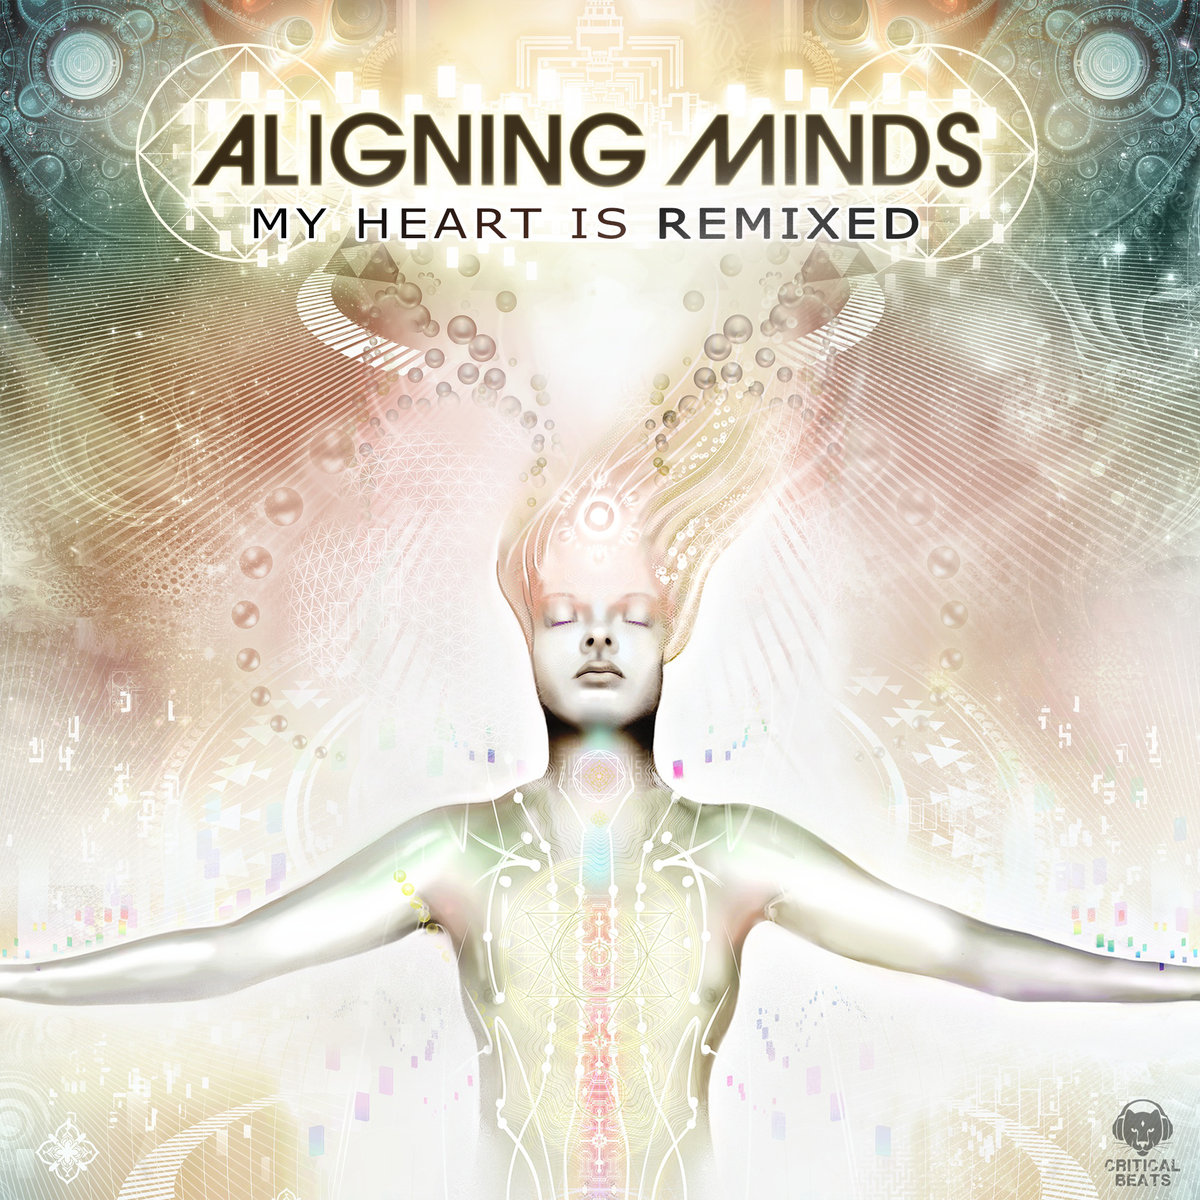 Aligning Minds - My Heart Is Love (One Hand Clap Remix) @ 'My Heart Is Remixed' album (asheville, baltimore)